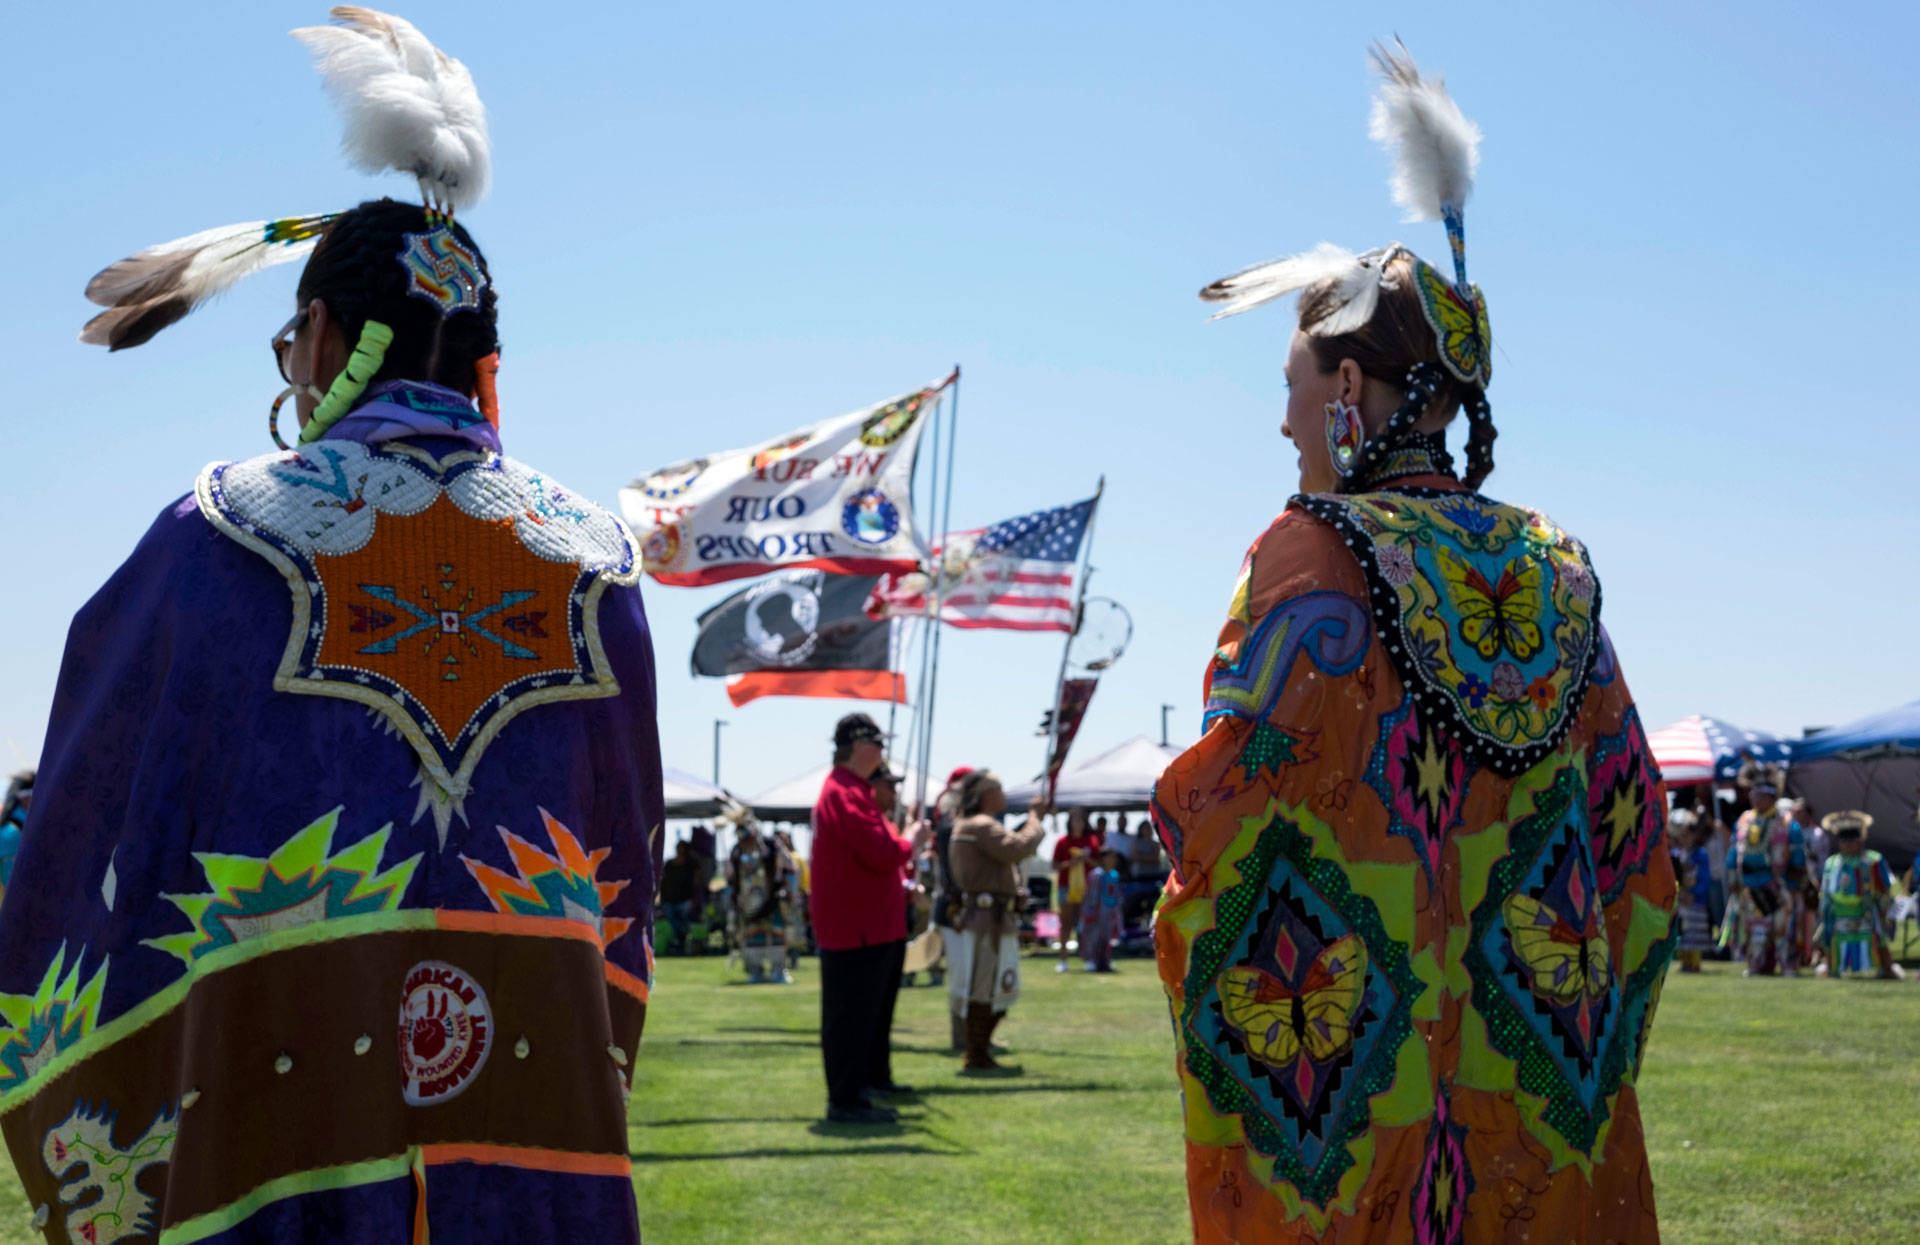 Helen Gaddie (L) stands inside the dance circle during the Sierra Mono Museum's 45th annual powwow on August 6, 2016. Vanessa Rancano/KQED